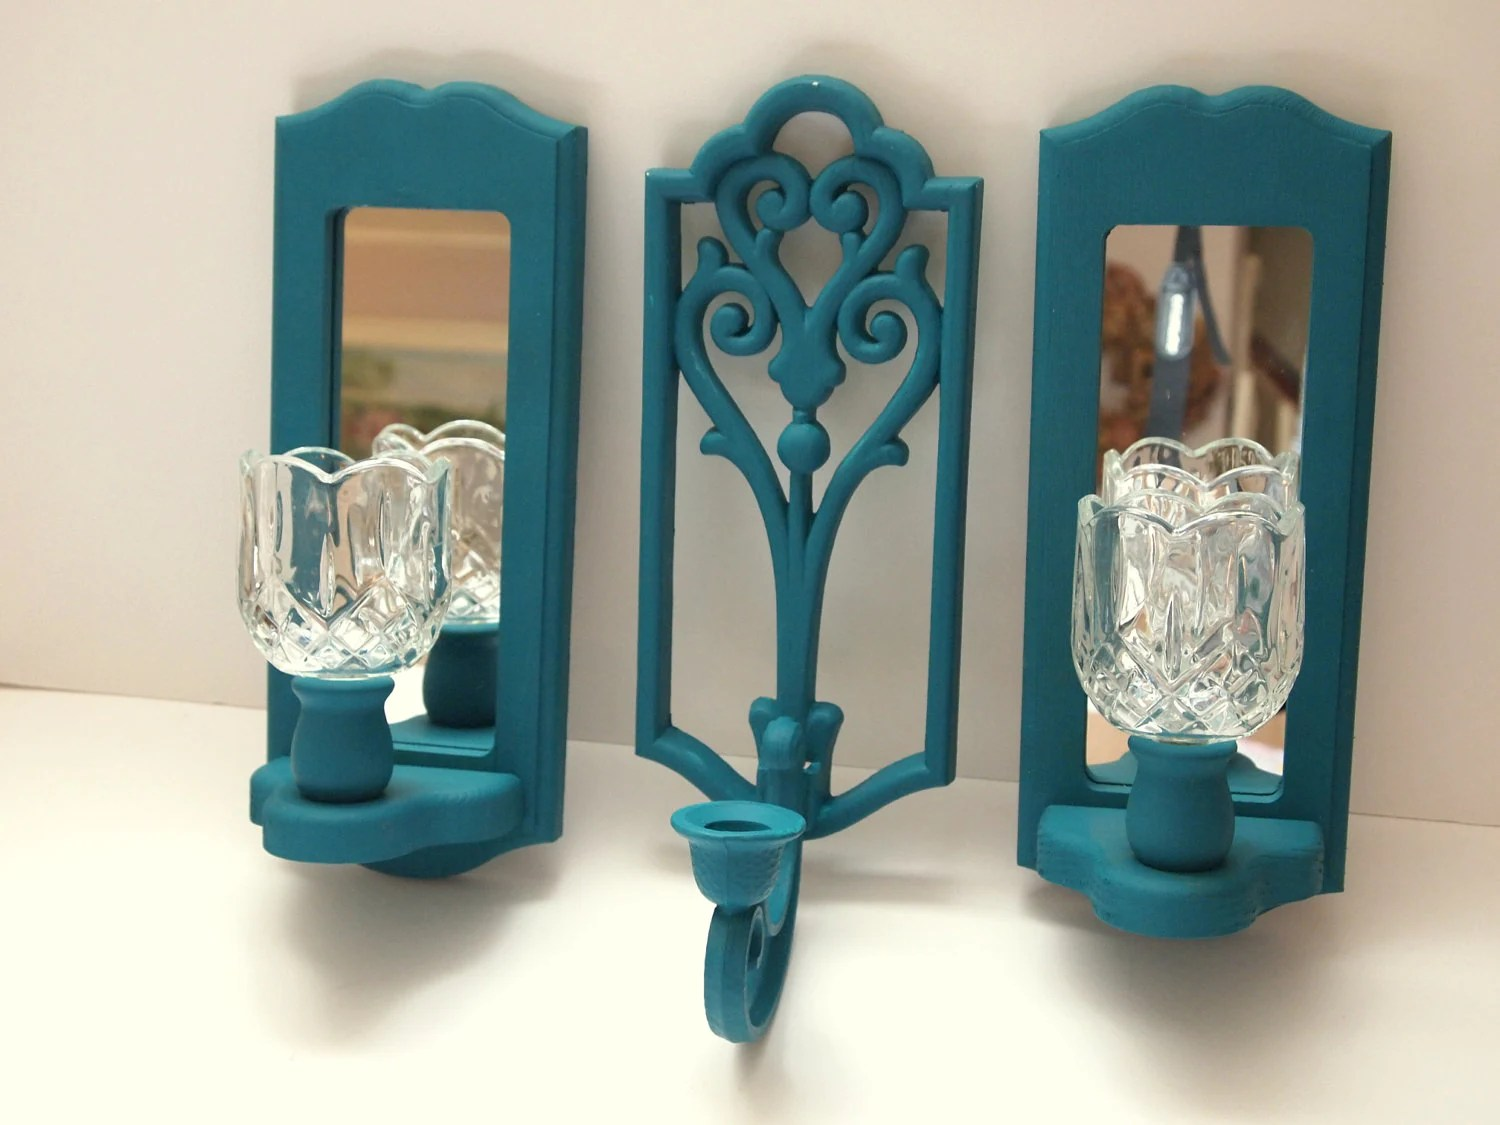 Teal Household Accessories